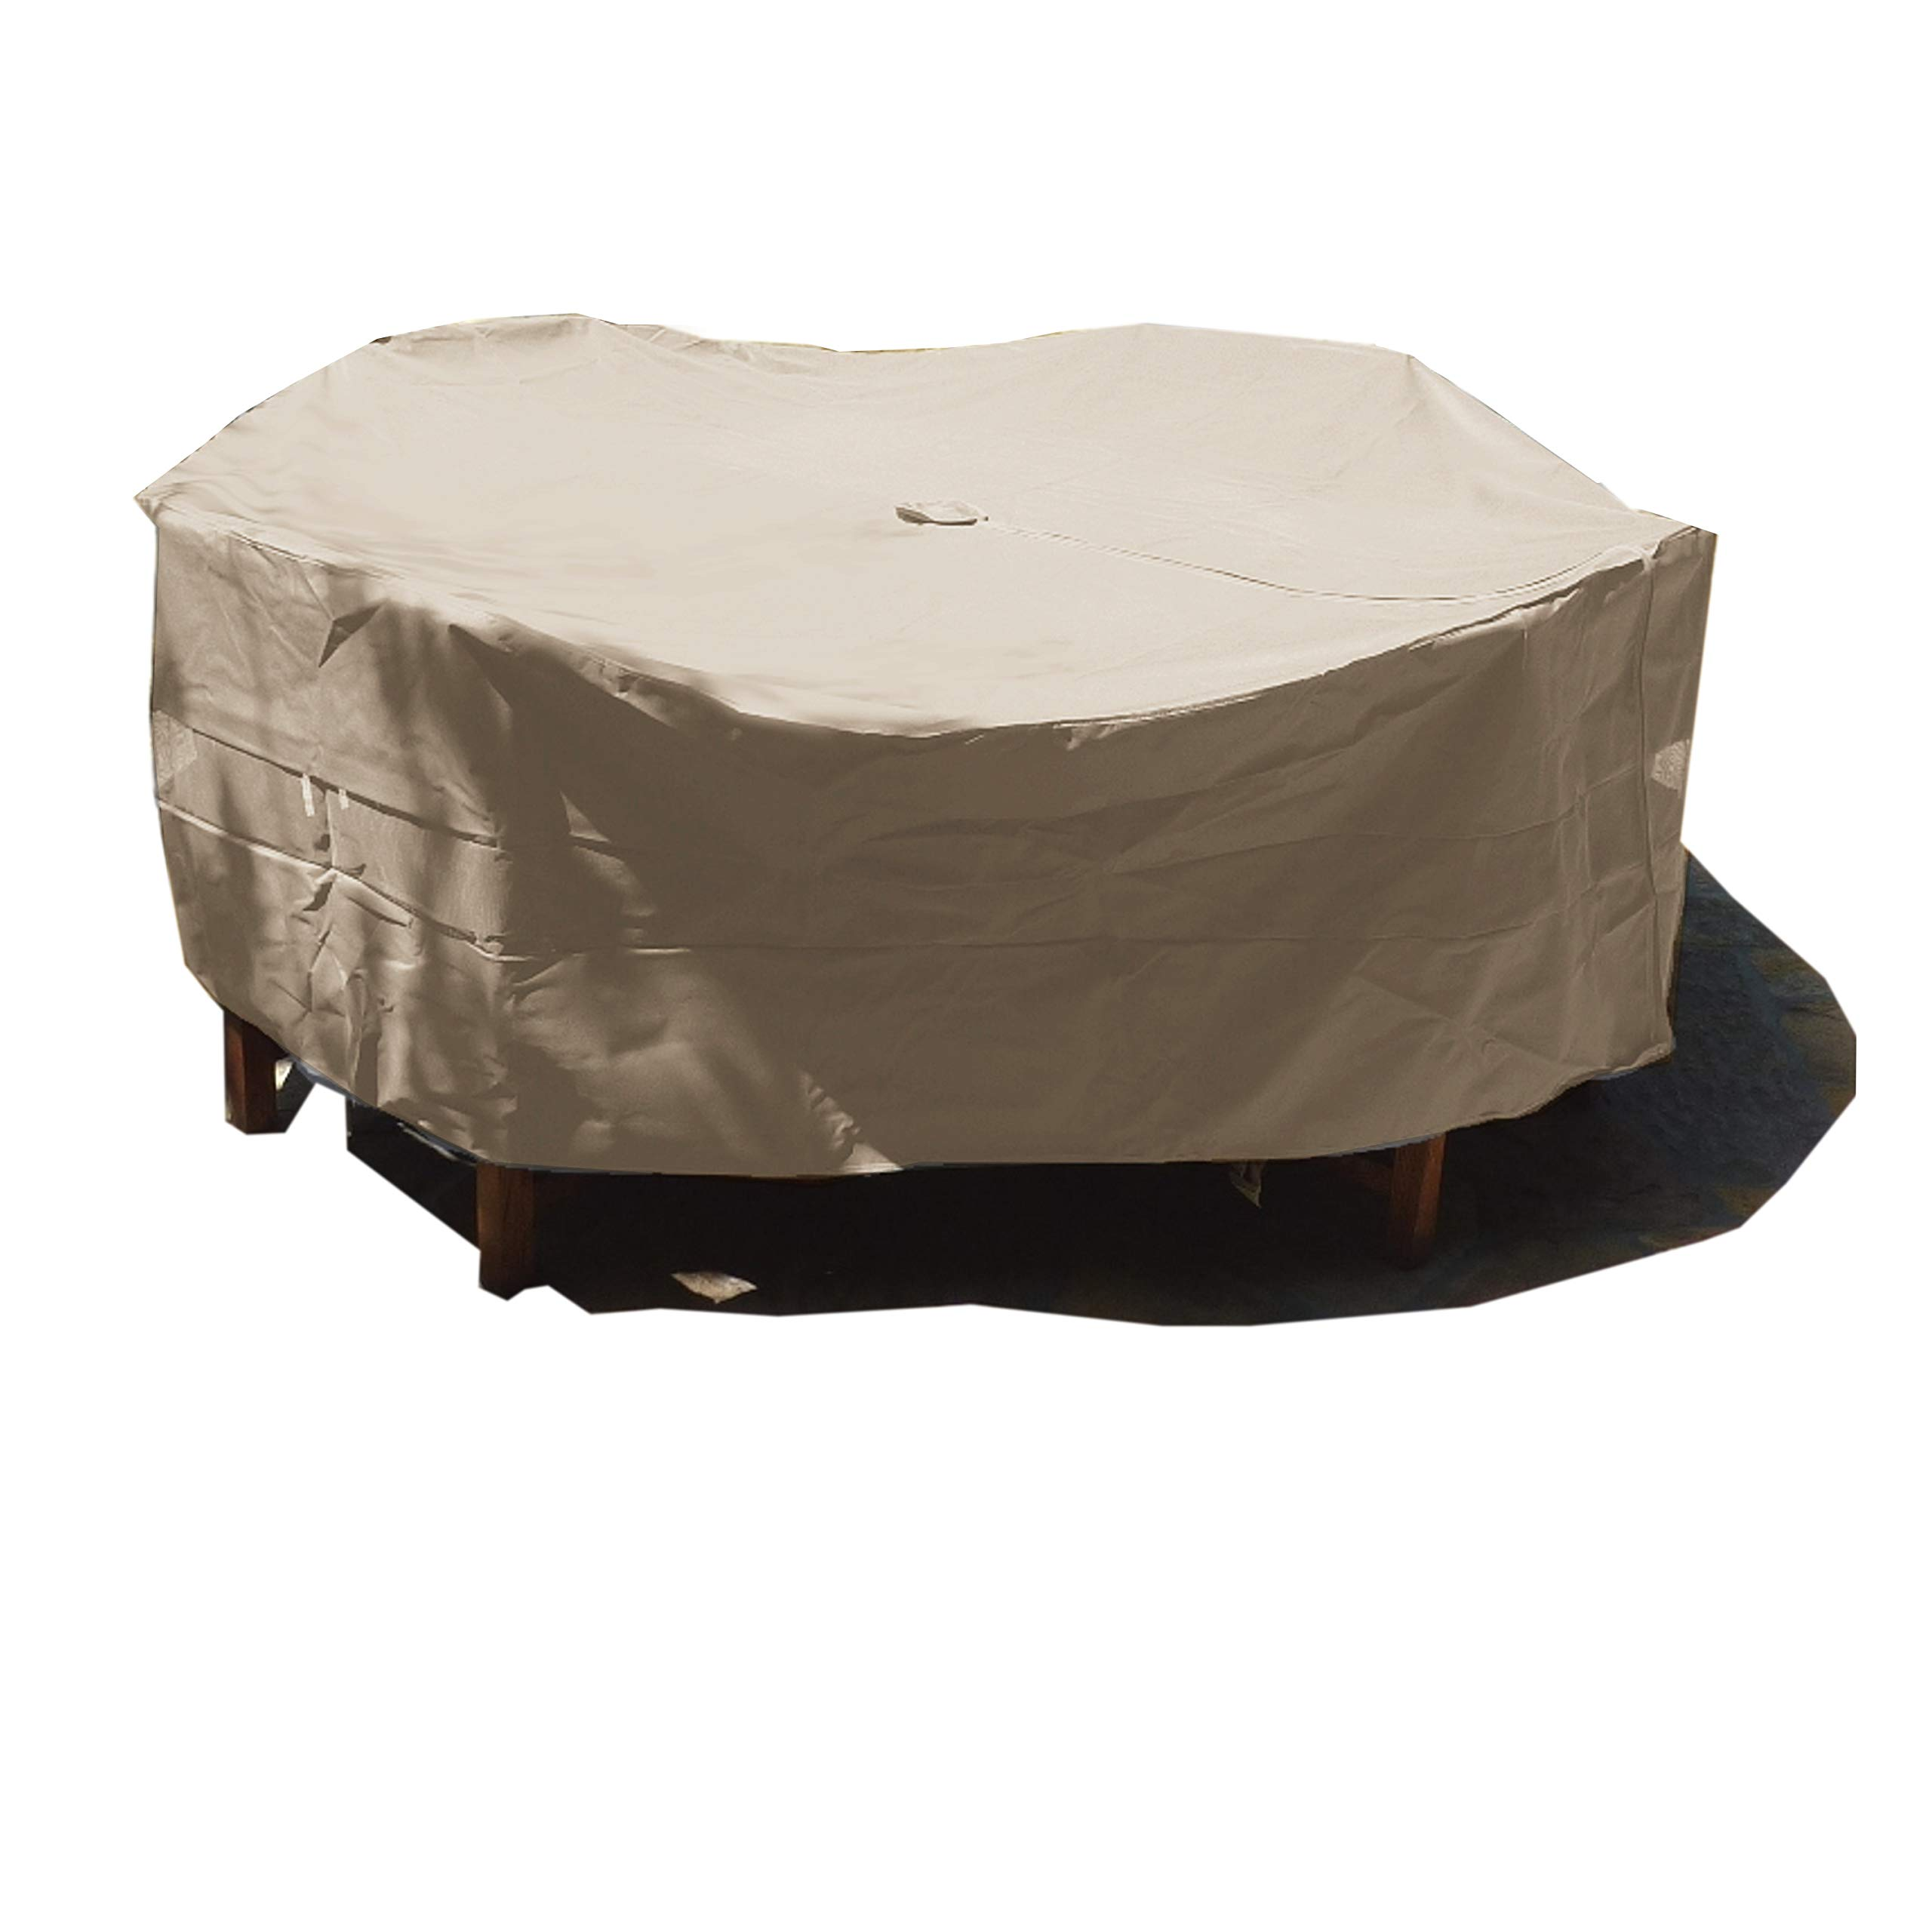 Patio Set Cover 104'' Dia. Fits Square, Oval or Round Table Set, Center Hole for Umbrella. by Formosa Covers